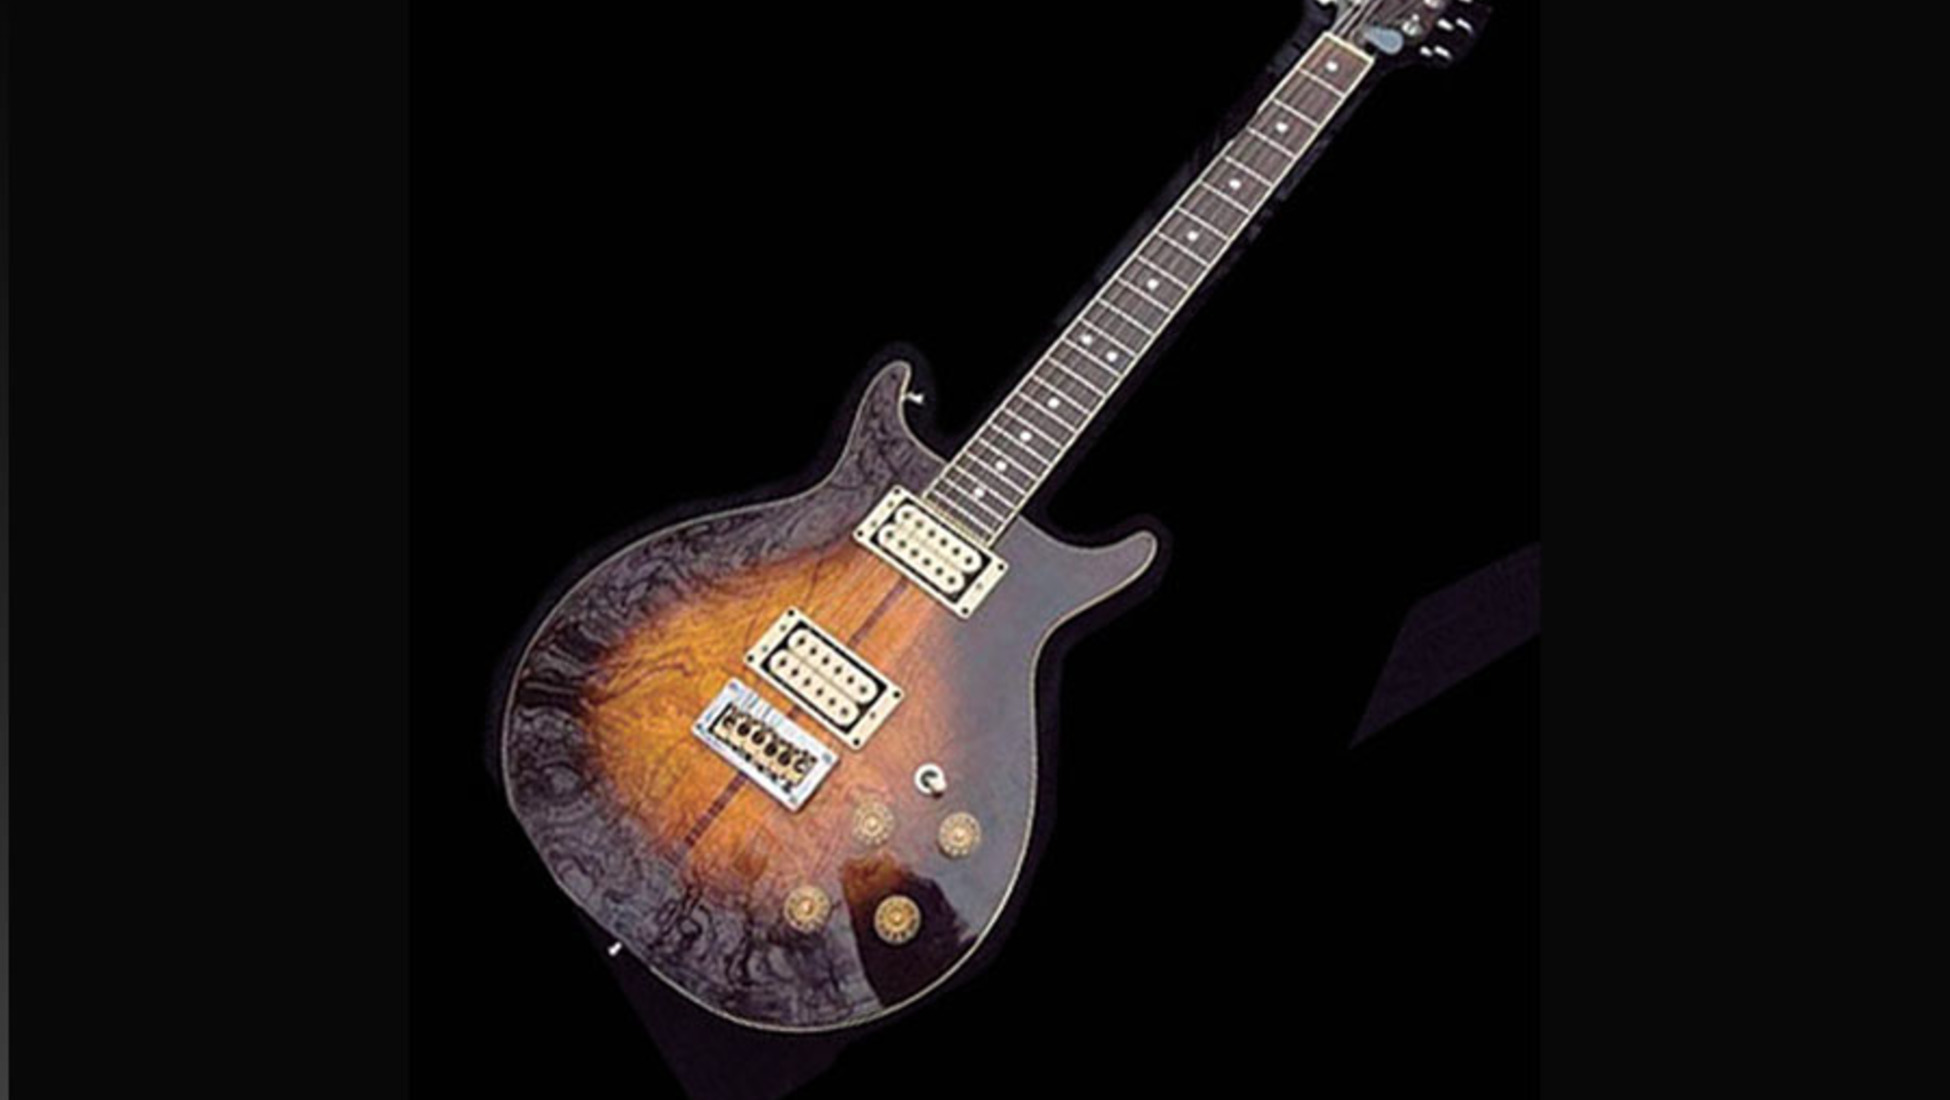 Top 5 Most Expensive Guitars Ever Sold - Catawiki